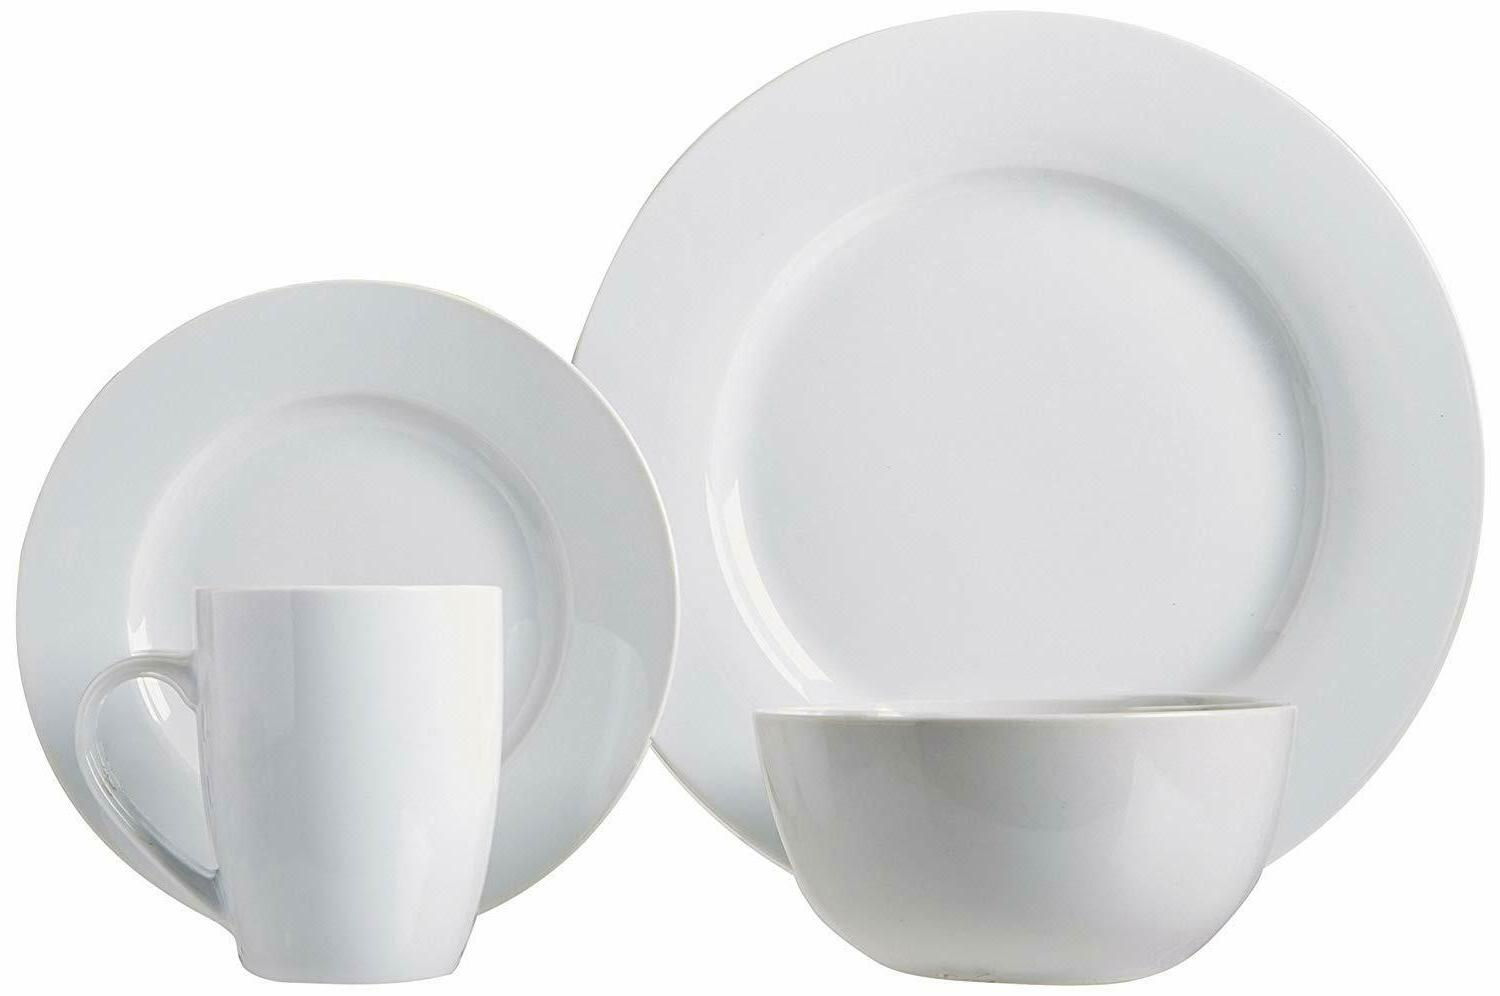 16-Piece Dinnerware Plates, for